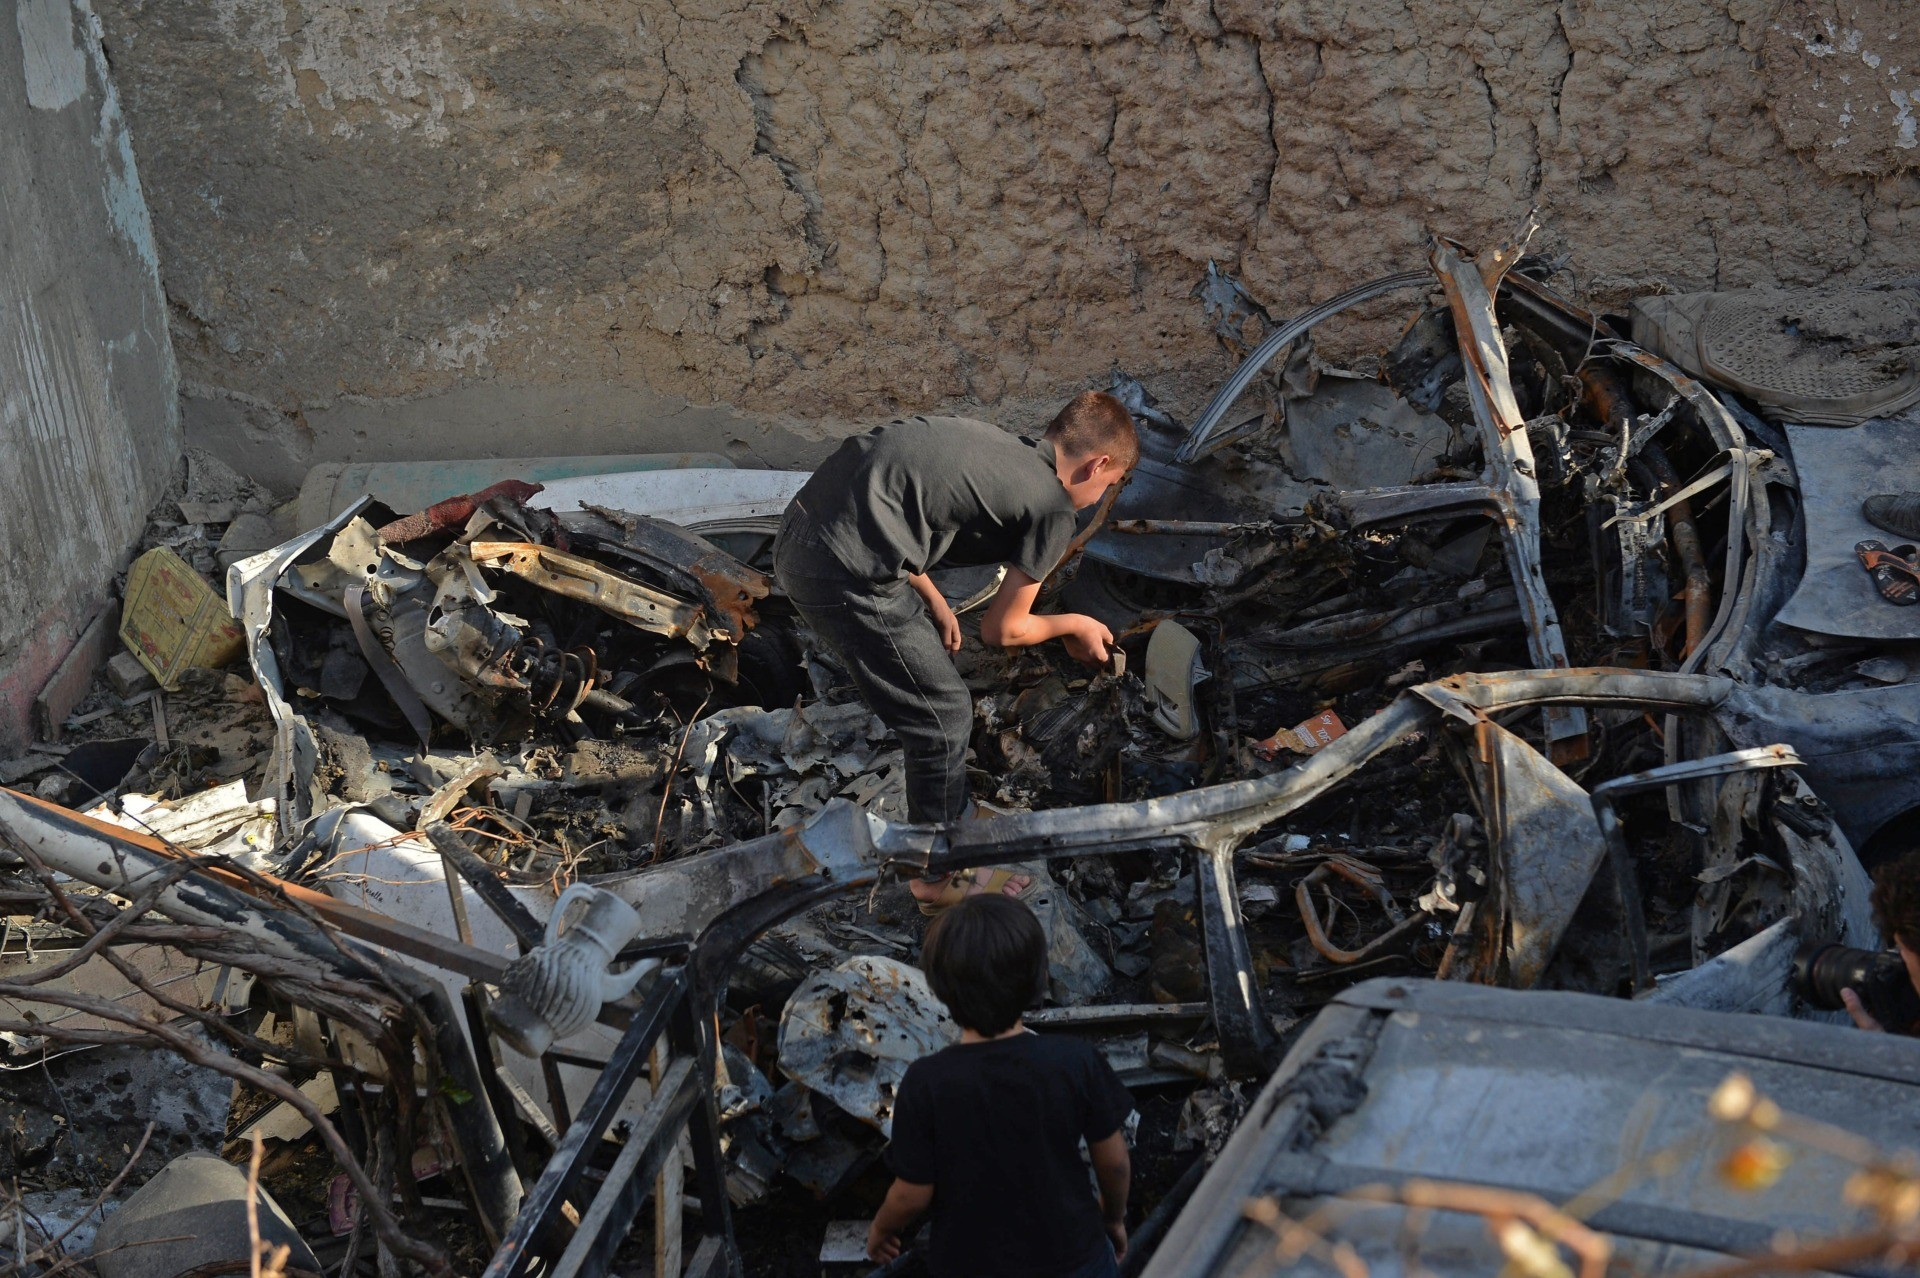 A relative of Ezmarai Ahmadi, inspects the debris of a vehicle that was damaged in a US drone strike in the Kwaja Burga neighbourhood of Kabul on September 18, 2021. - Ezmarai Ahmadi was wrongly identified as an Islamic State militant by US intelligence, who tracked his white Toyota for eight hours on August 29 before targeting the car, killing seven children and three adults. (Photo by Hoshang Hashimi / AFP) (Photo by HOSHANG HASHIMI/AFP via Getty Images)